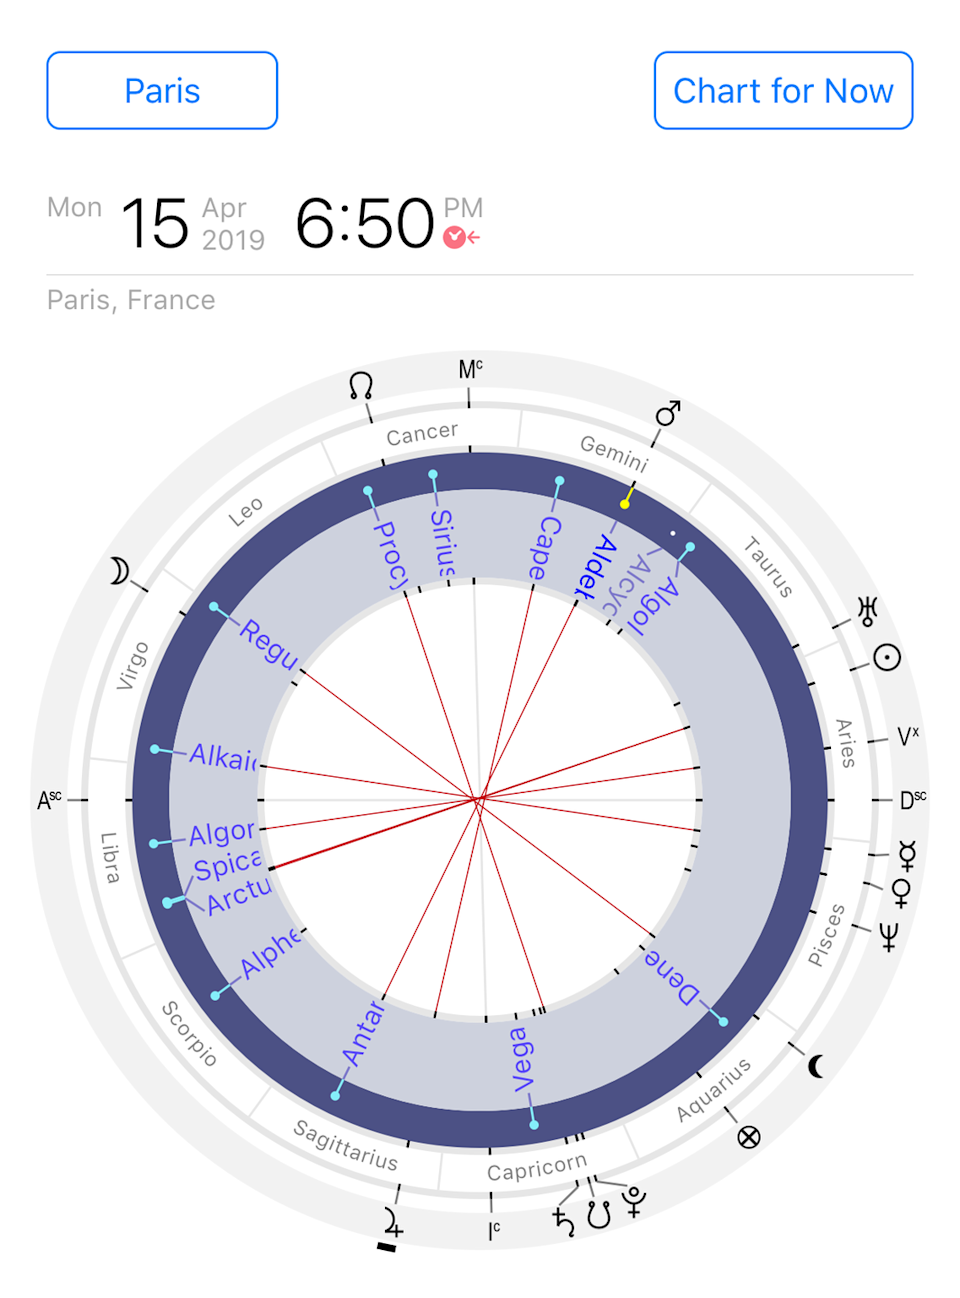 "<p><strong><strong><strong>Perfect for: </strong></strong></strong>Staying up-to-date with the planets' movements</p><p><strong>Cost: </strong>Free with add-on packs, but no recurring charges</p><p>Think of Time Nomad as the ultimate astrological calculator. The app is especially useful in the present tense, and understanding how astrological transits could be affecting you at this moment in time, if you're a believer. Or, you can see what the stars may have in store at a future date. It's possible to add a feature for other people (or companies and world trends), so you can see what's coming up in your friends' lives, too. </p><p><a class=""link rapid-noclick-resp"" href=""https://apps.apple.com/us/app/time-nomad/id1092841332"" rel=""nofollow noopener"" target=""_blank"" data-ylk=""slk:Download Now"">Download Now</a></p>"